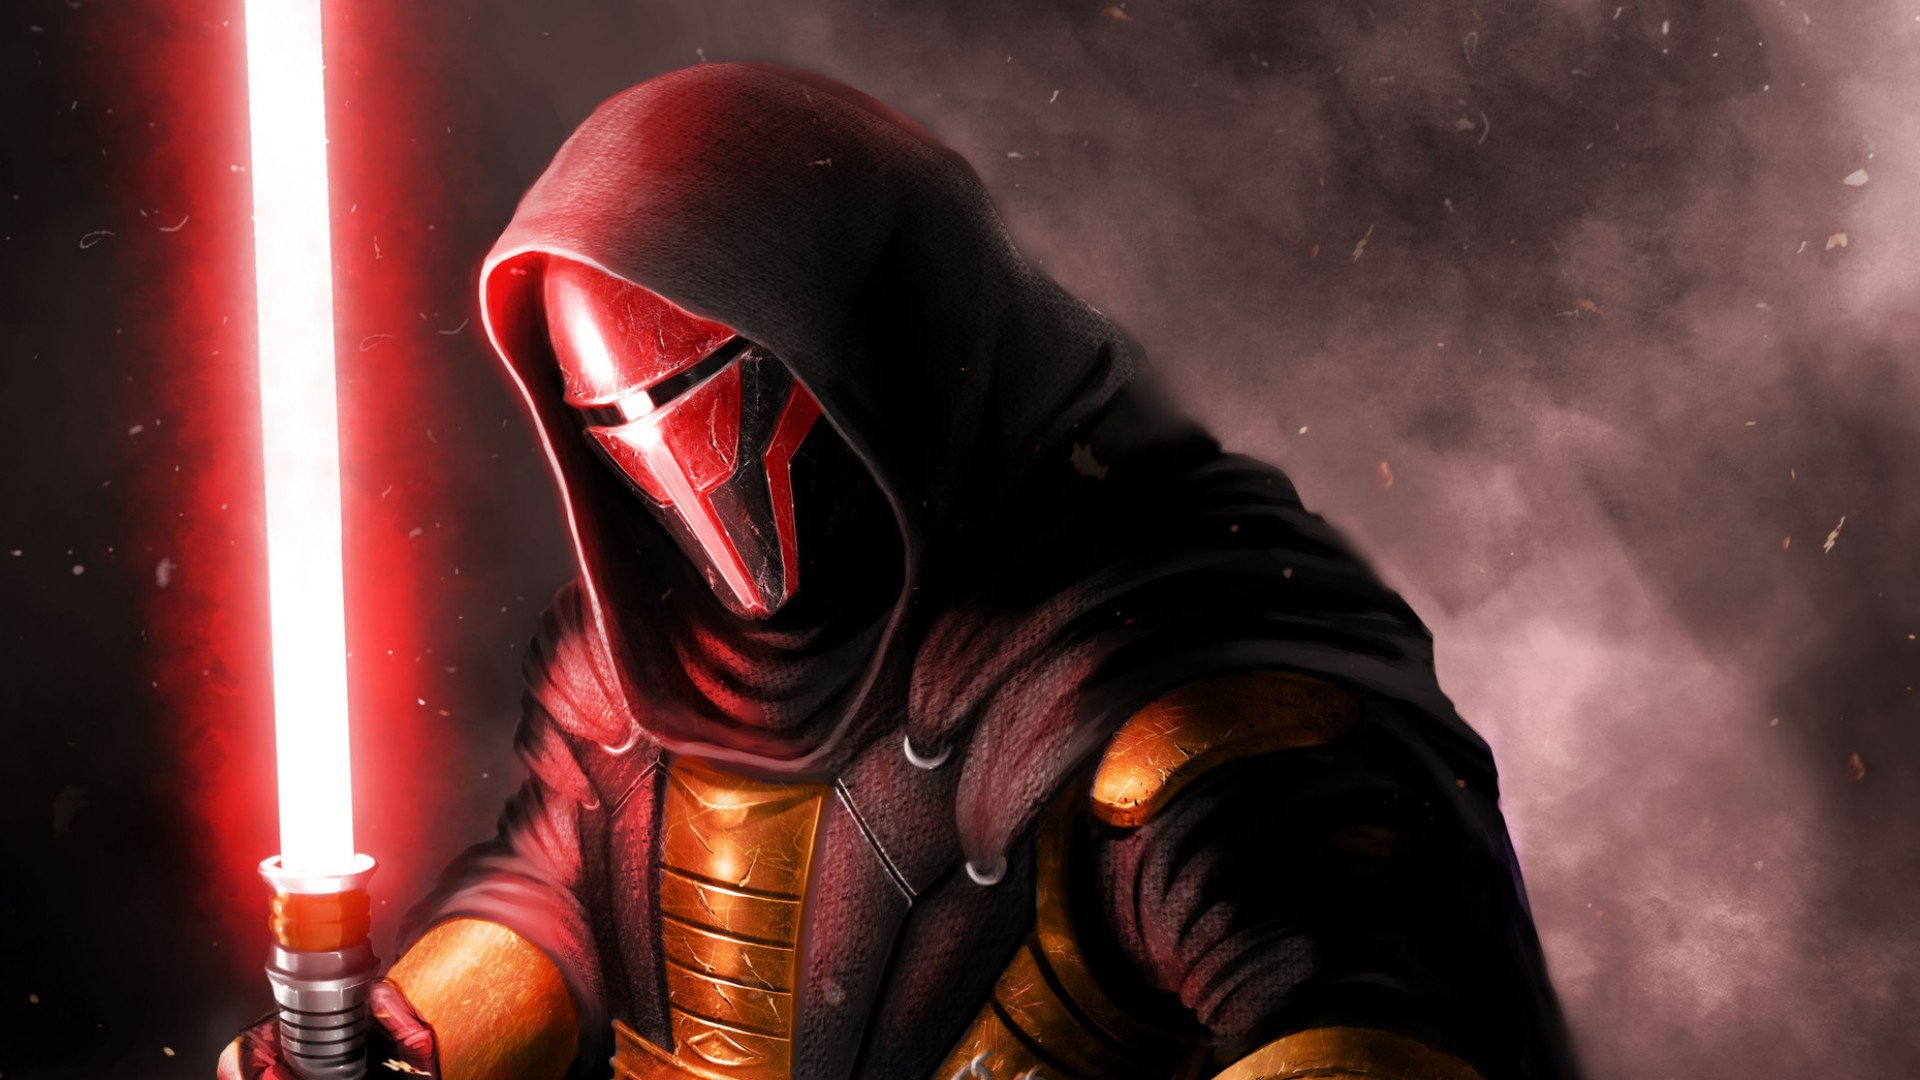 Download Revan Wallpaper 1920x1080 Hd Backgrounds Download